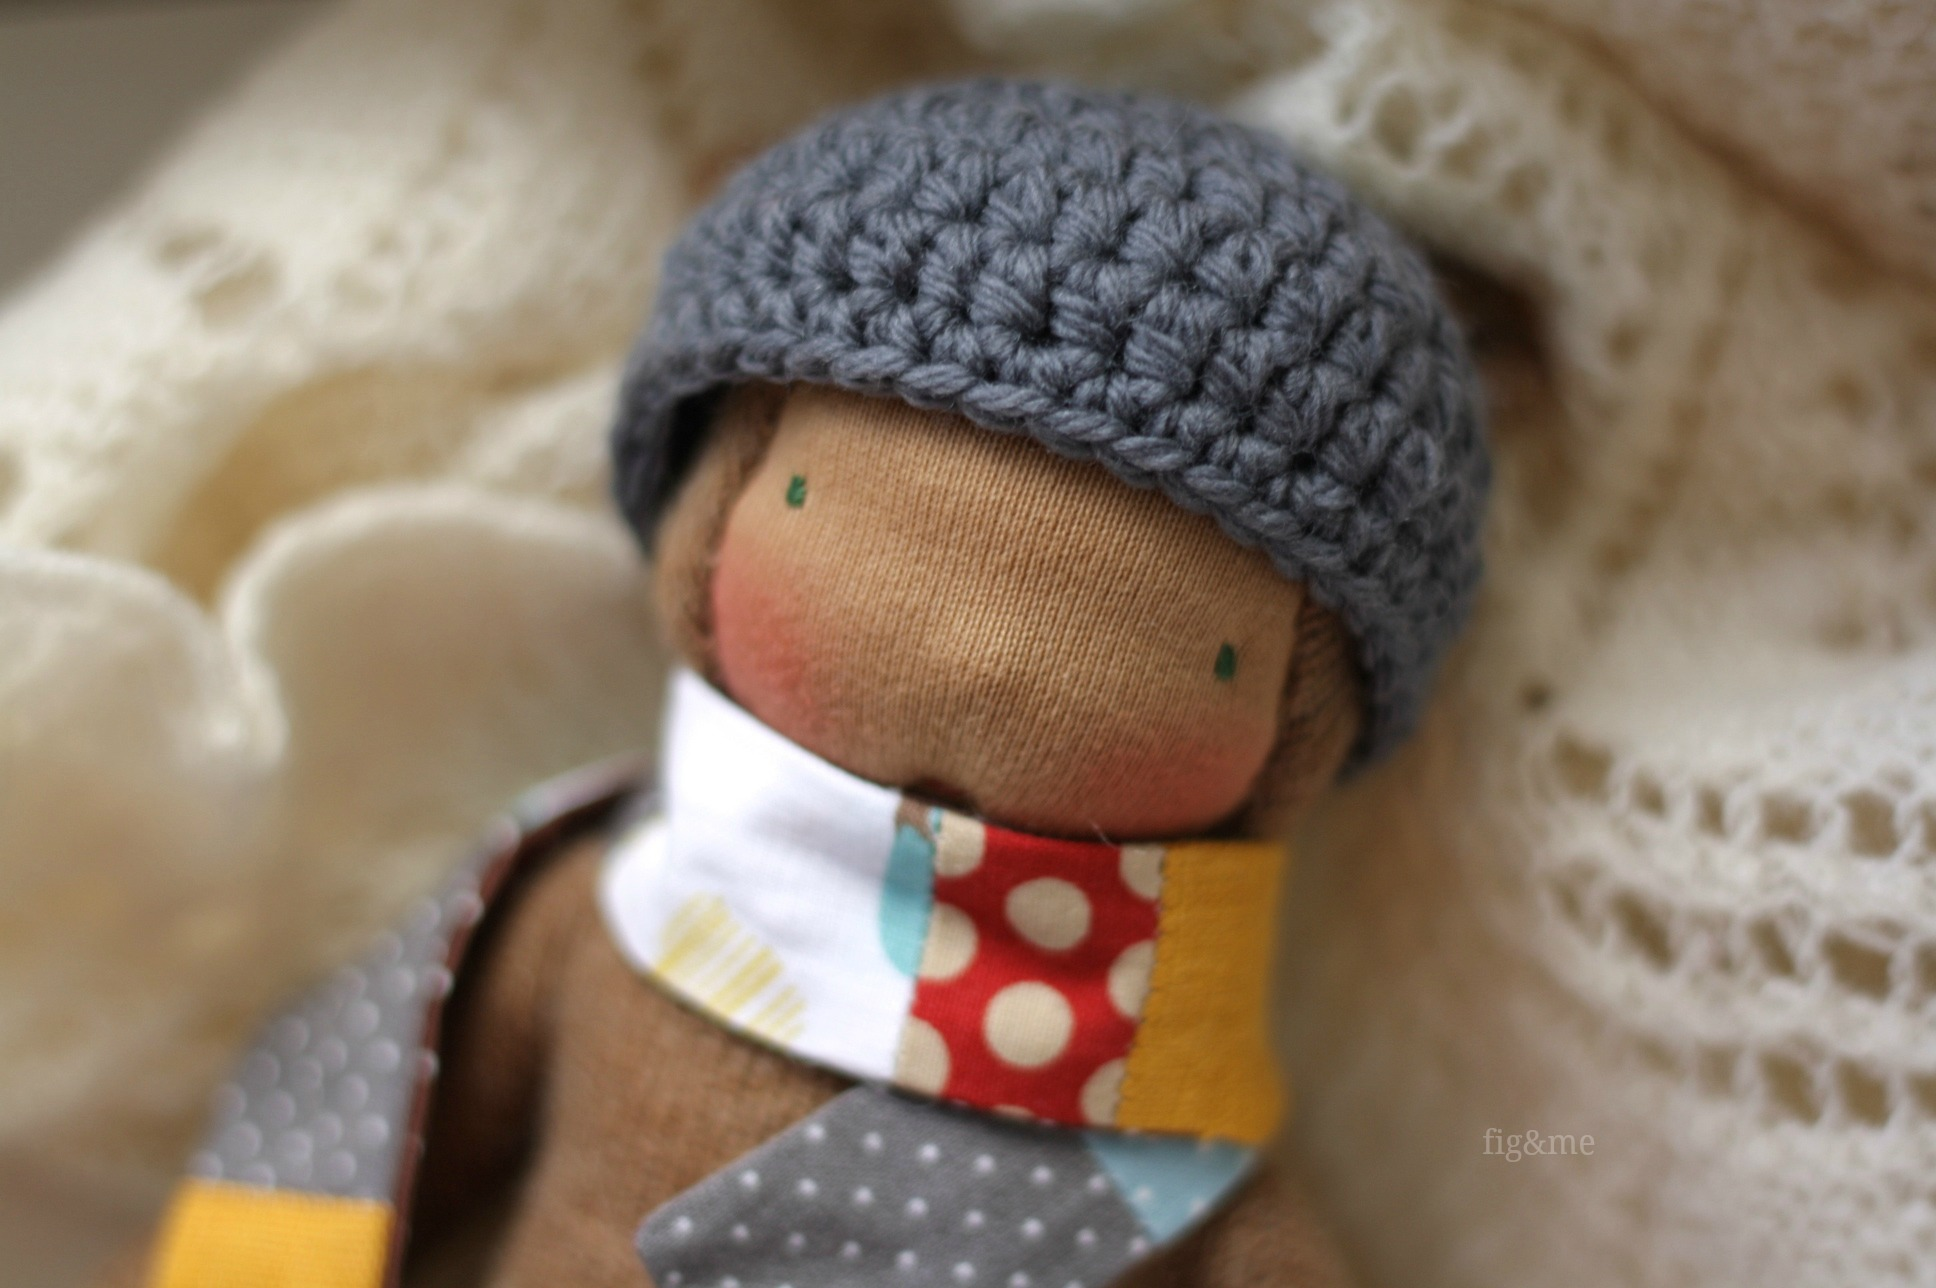 Wearing patchwork scarves and cozy hats, by Fig and me.